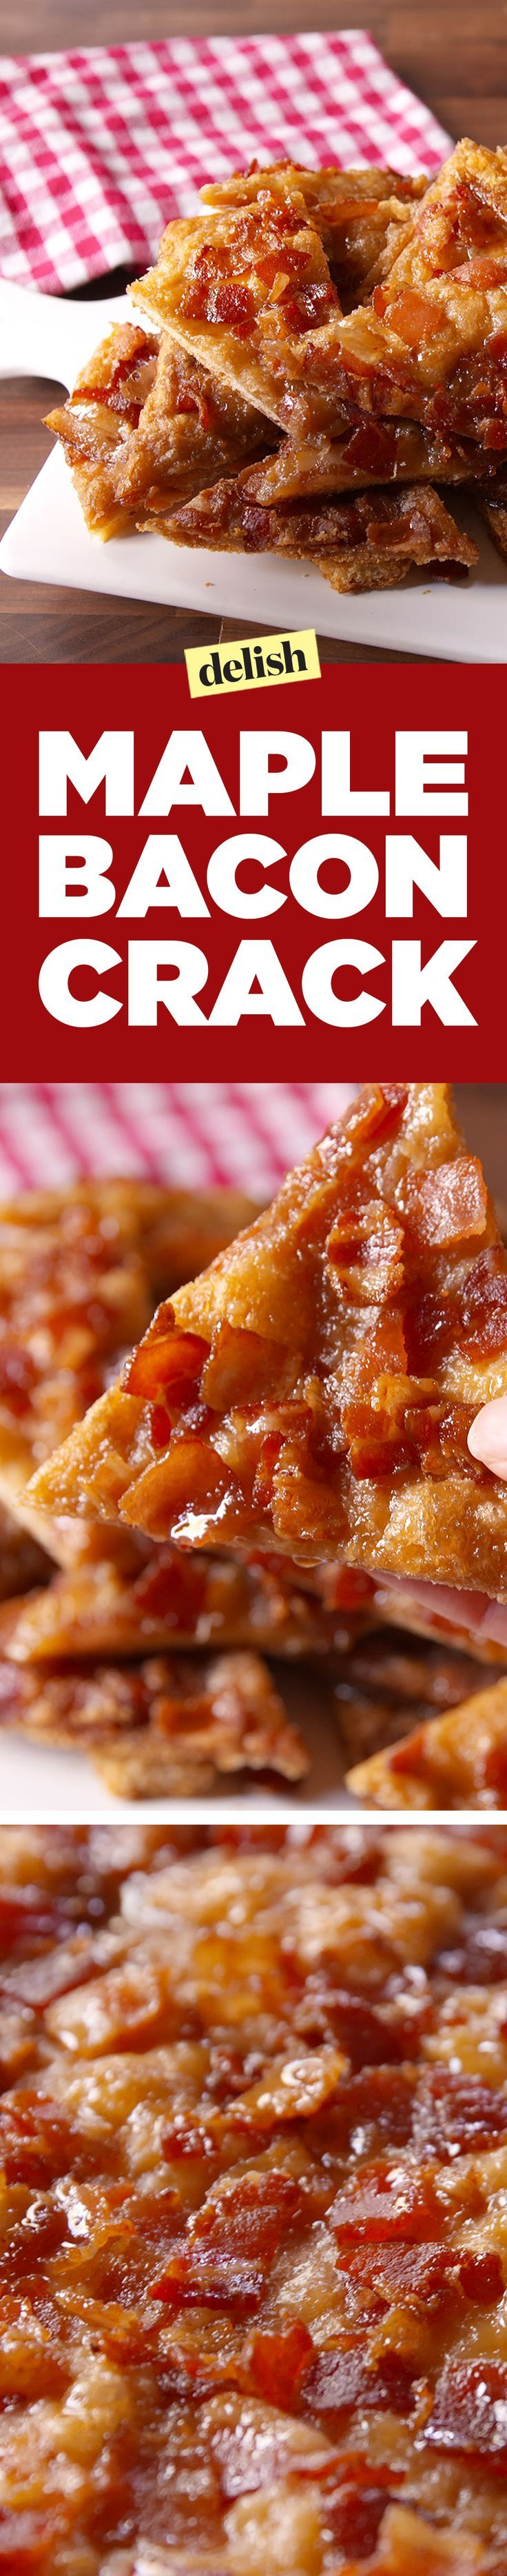 Maple Bacon Crack is the candied bacon treat you've been waiting for. Get the recipe on http://Delish.com.